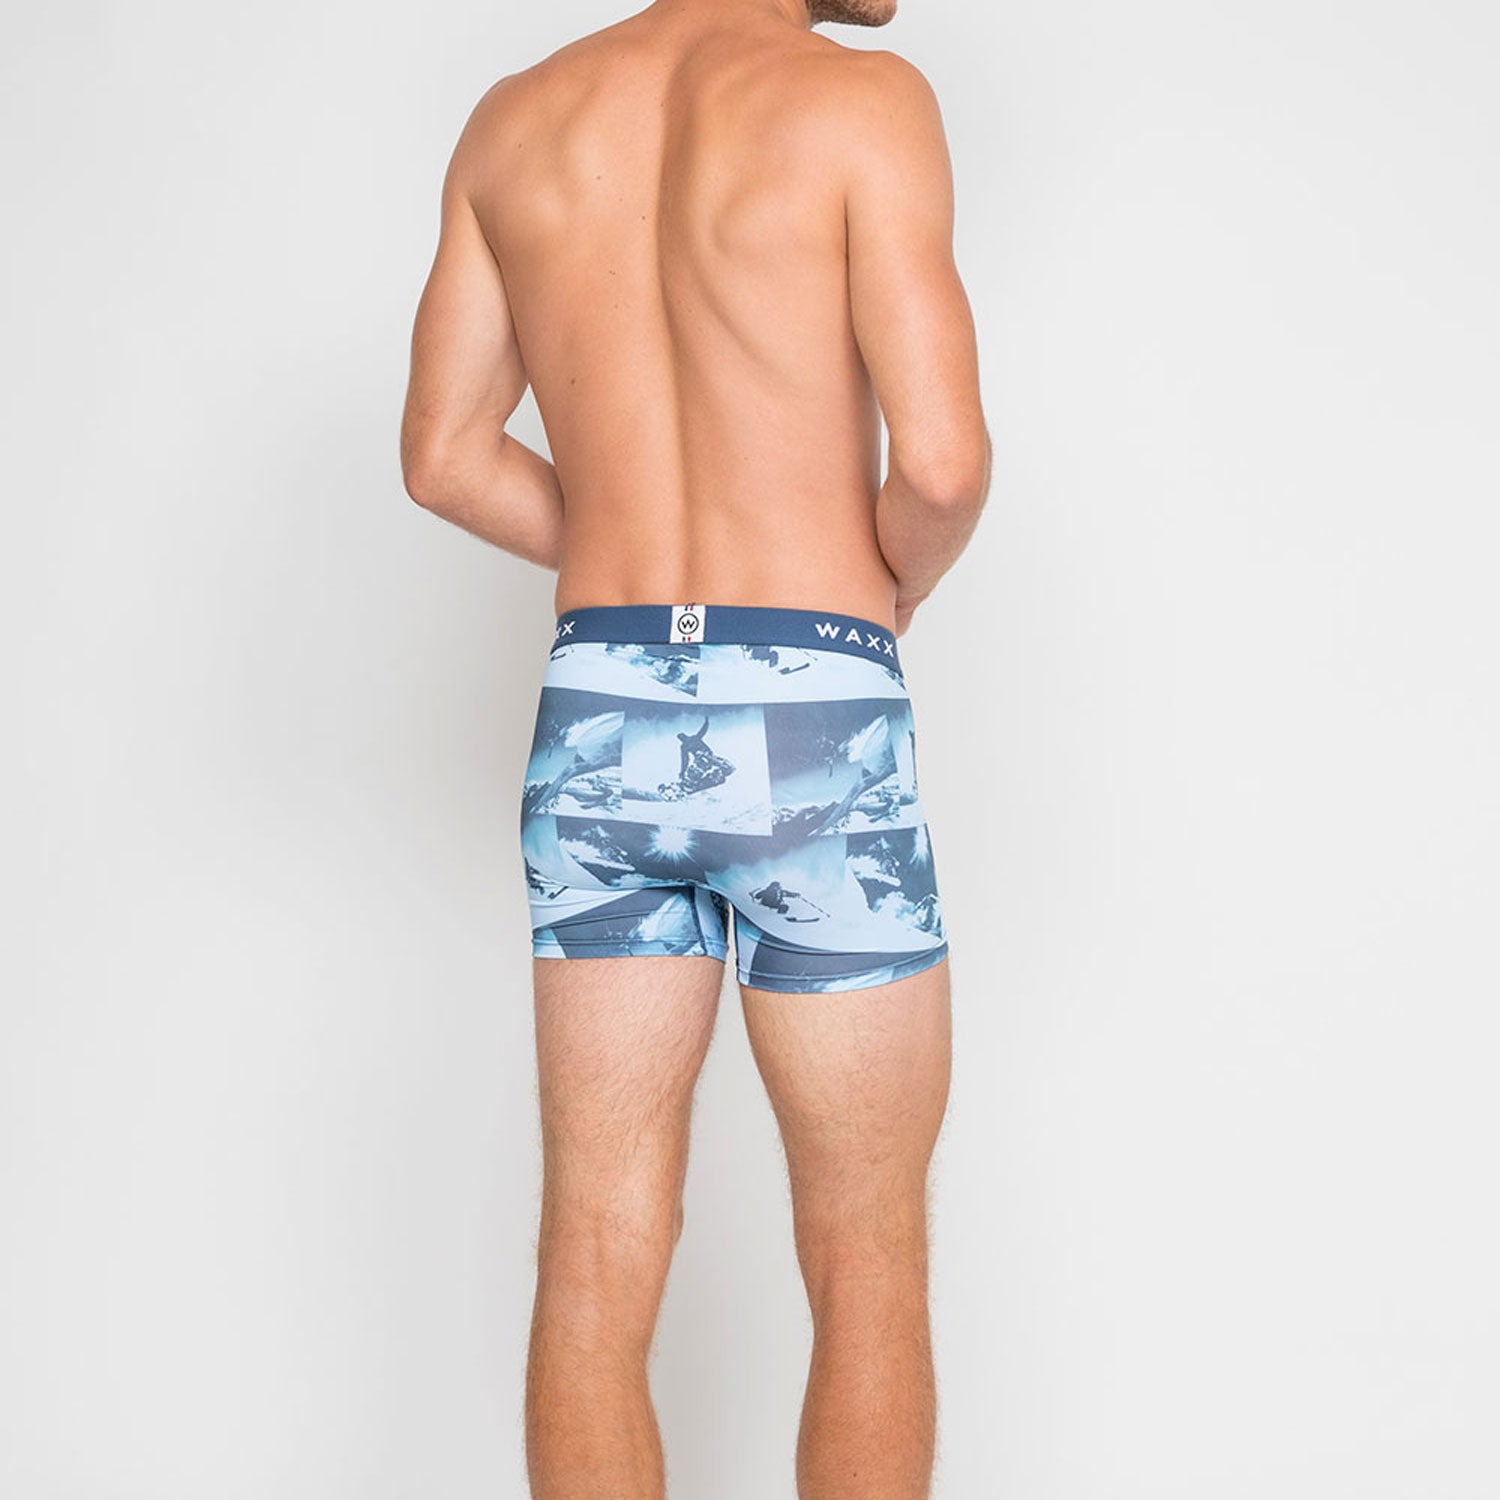 Waxx Men's Trunk Boxer Bundle 'On The Piste'